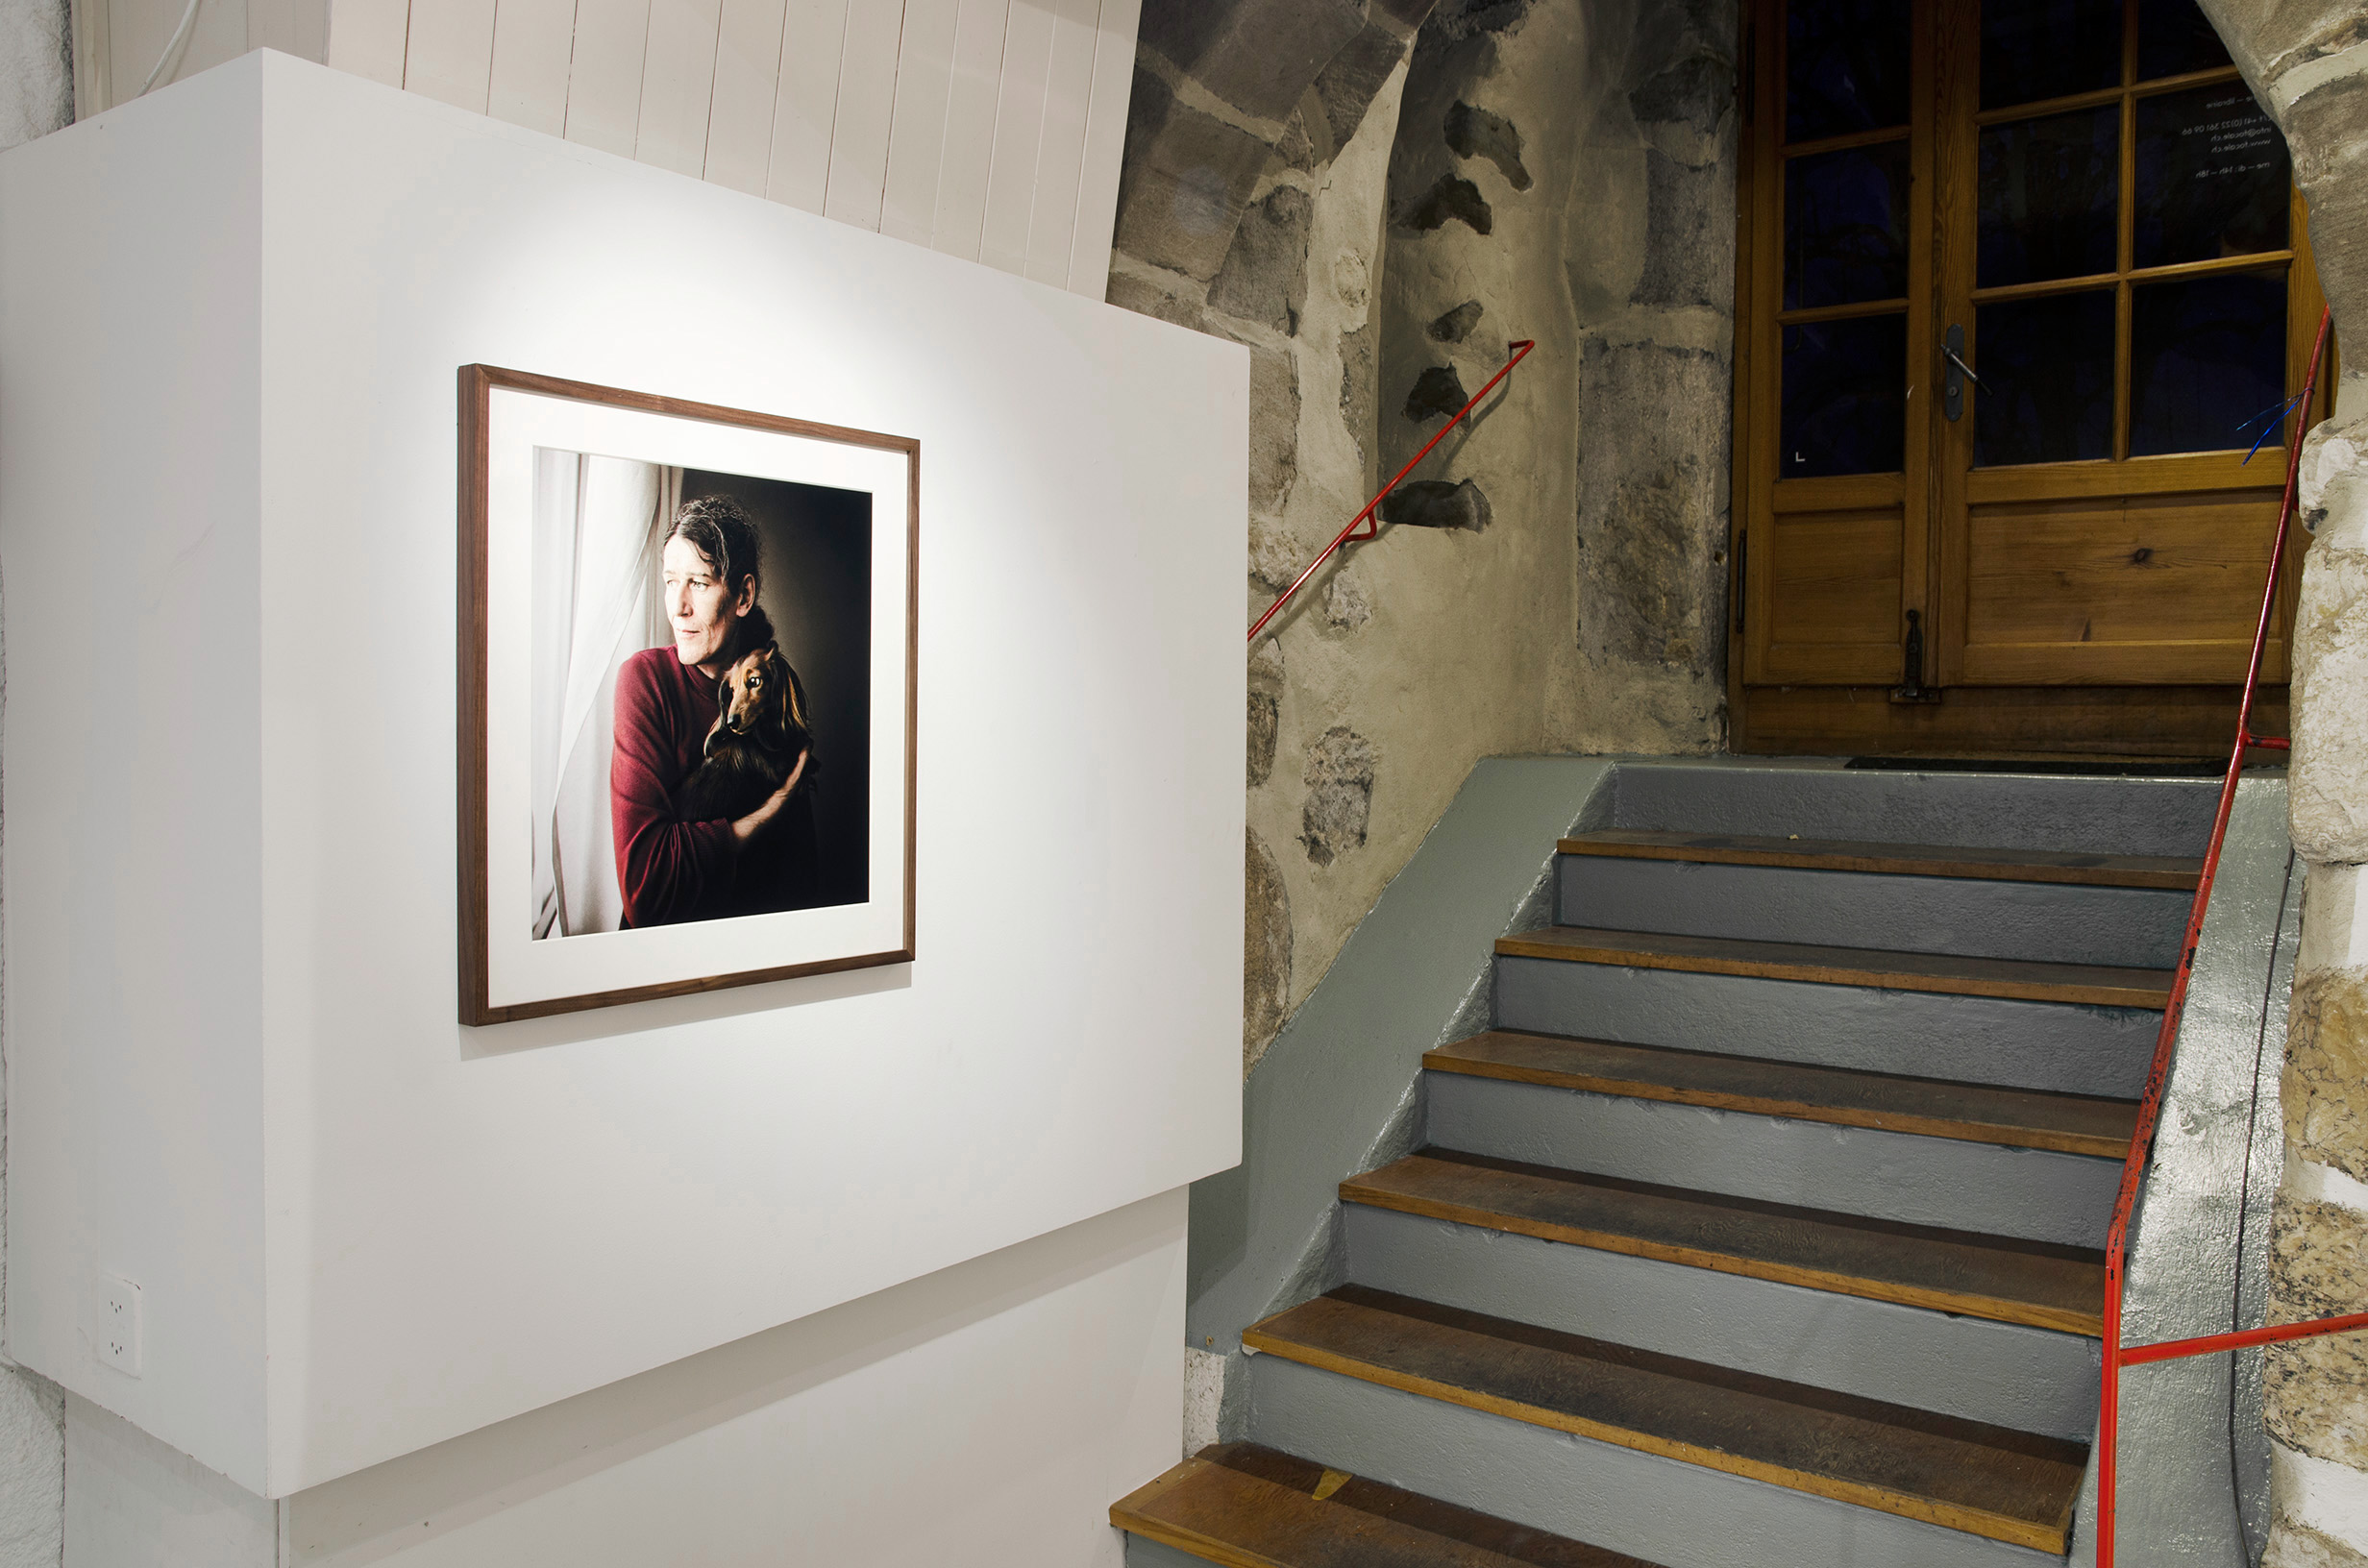 installation view, solo show, FOCALE, Nyon, 2017